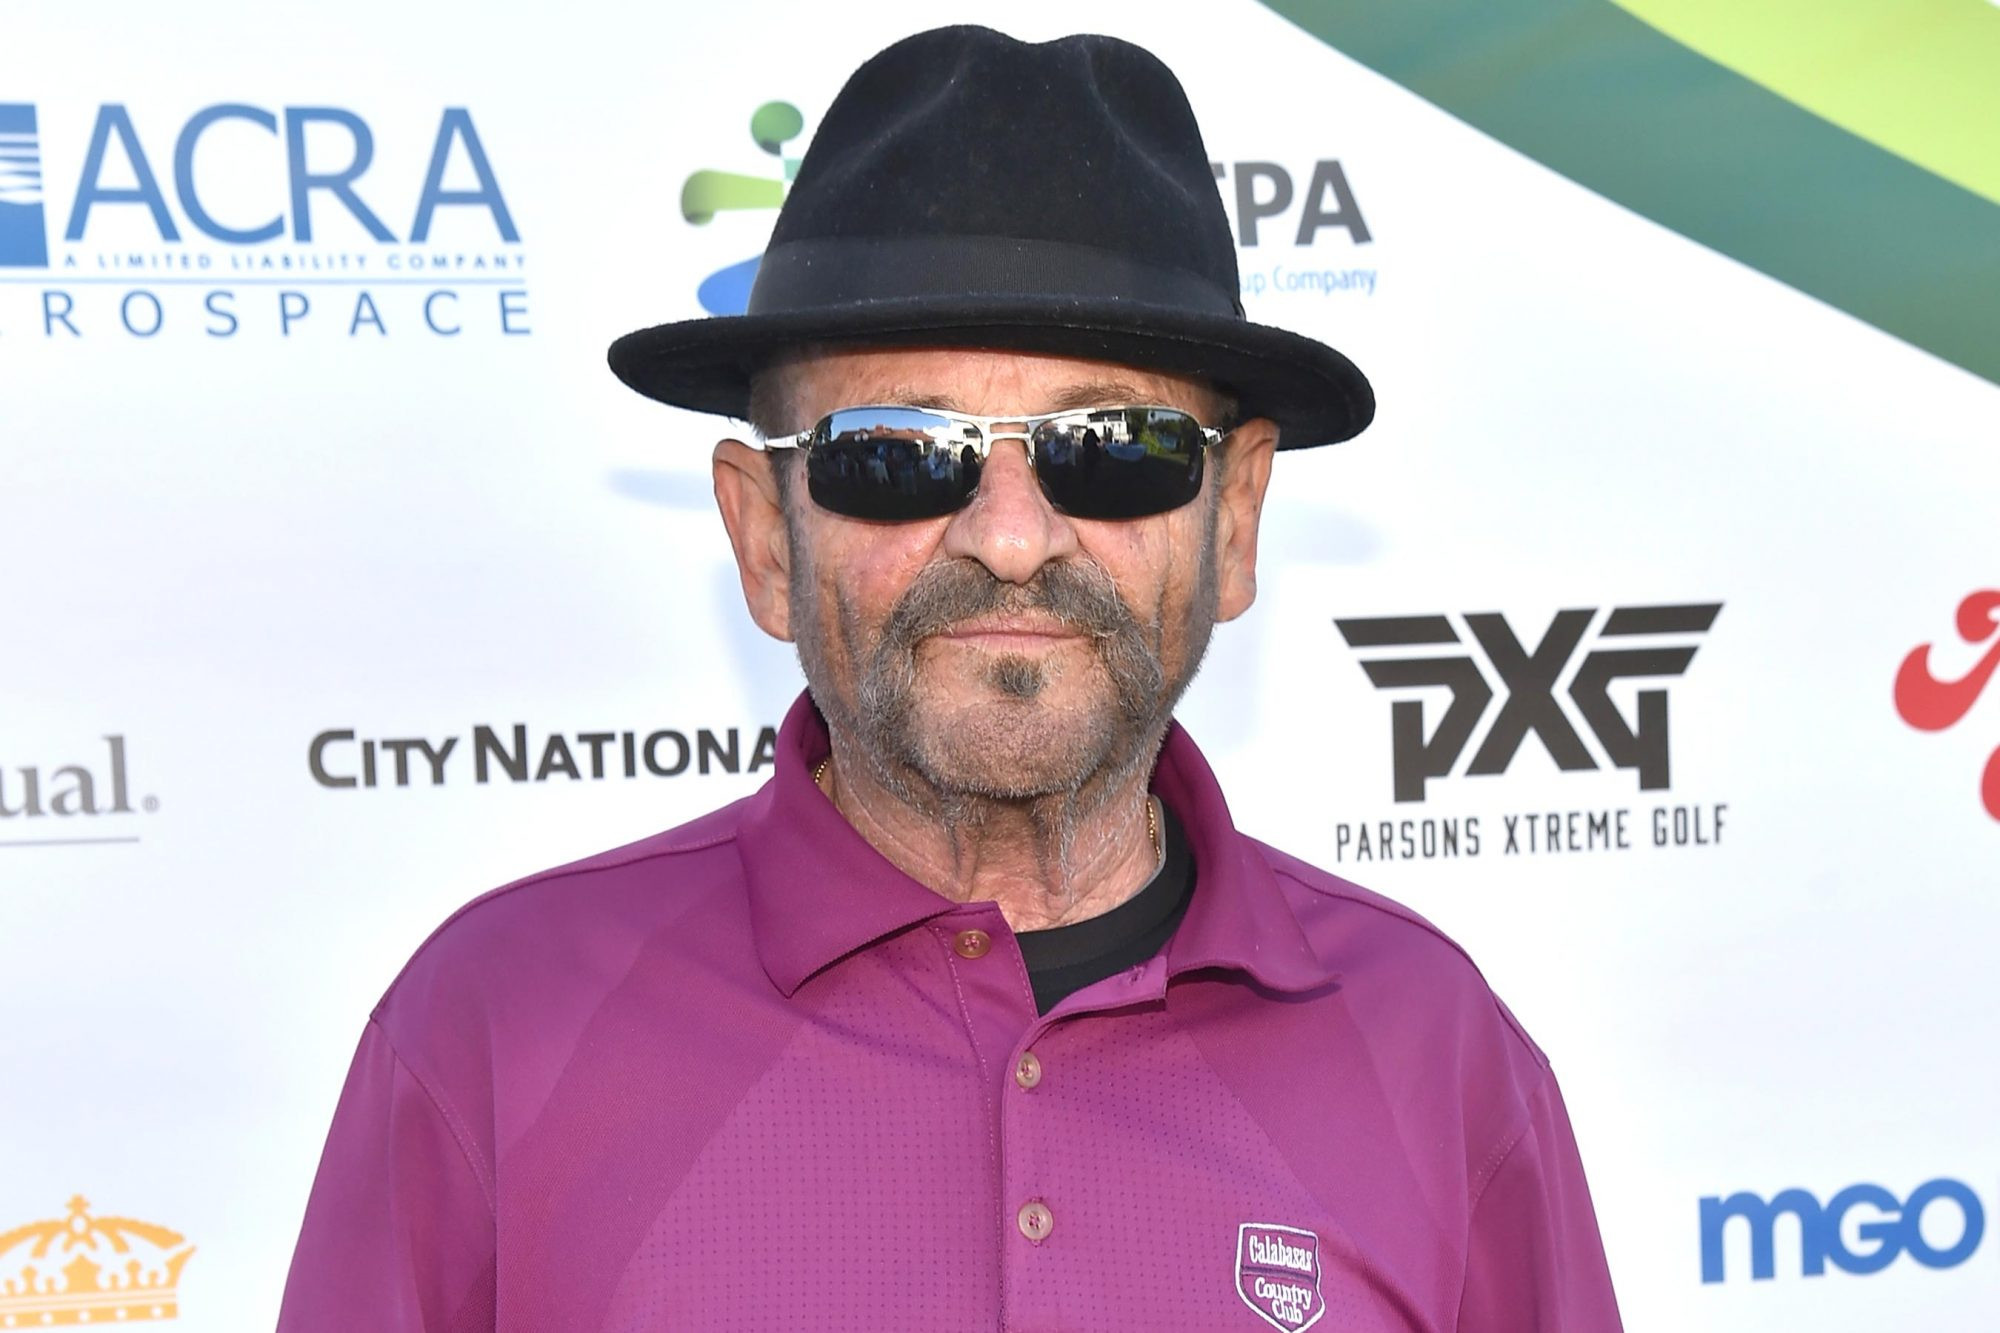 The 9th Annual George Lopez Celebrity Golf Classic